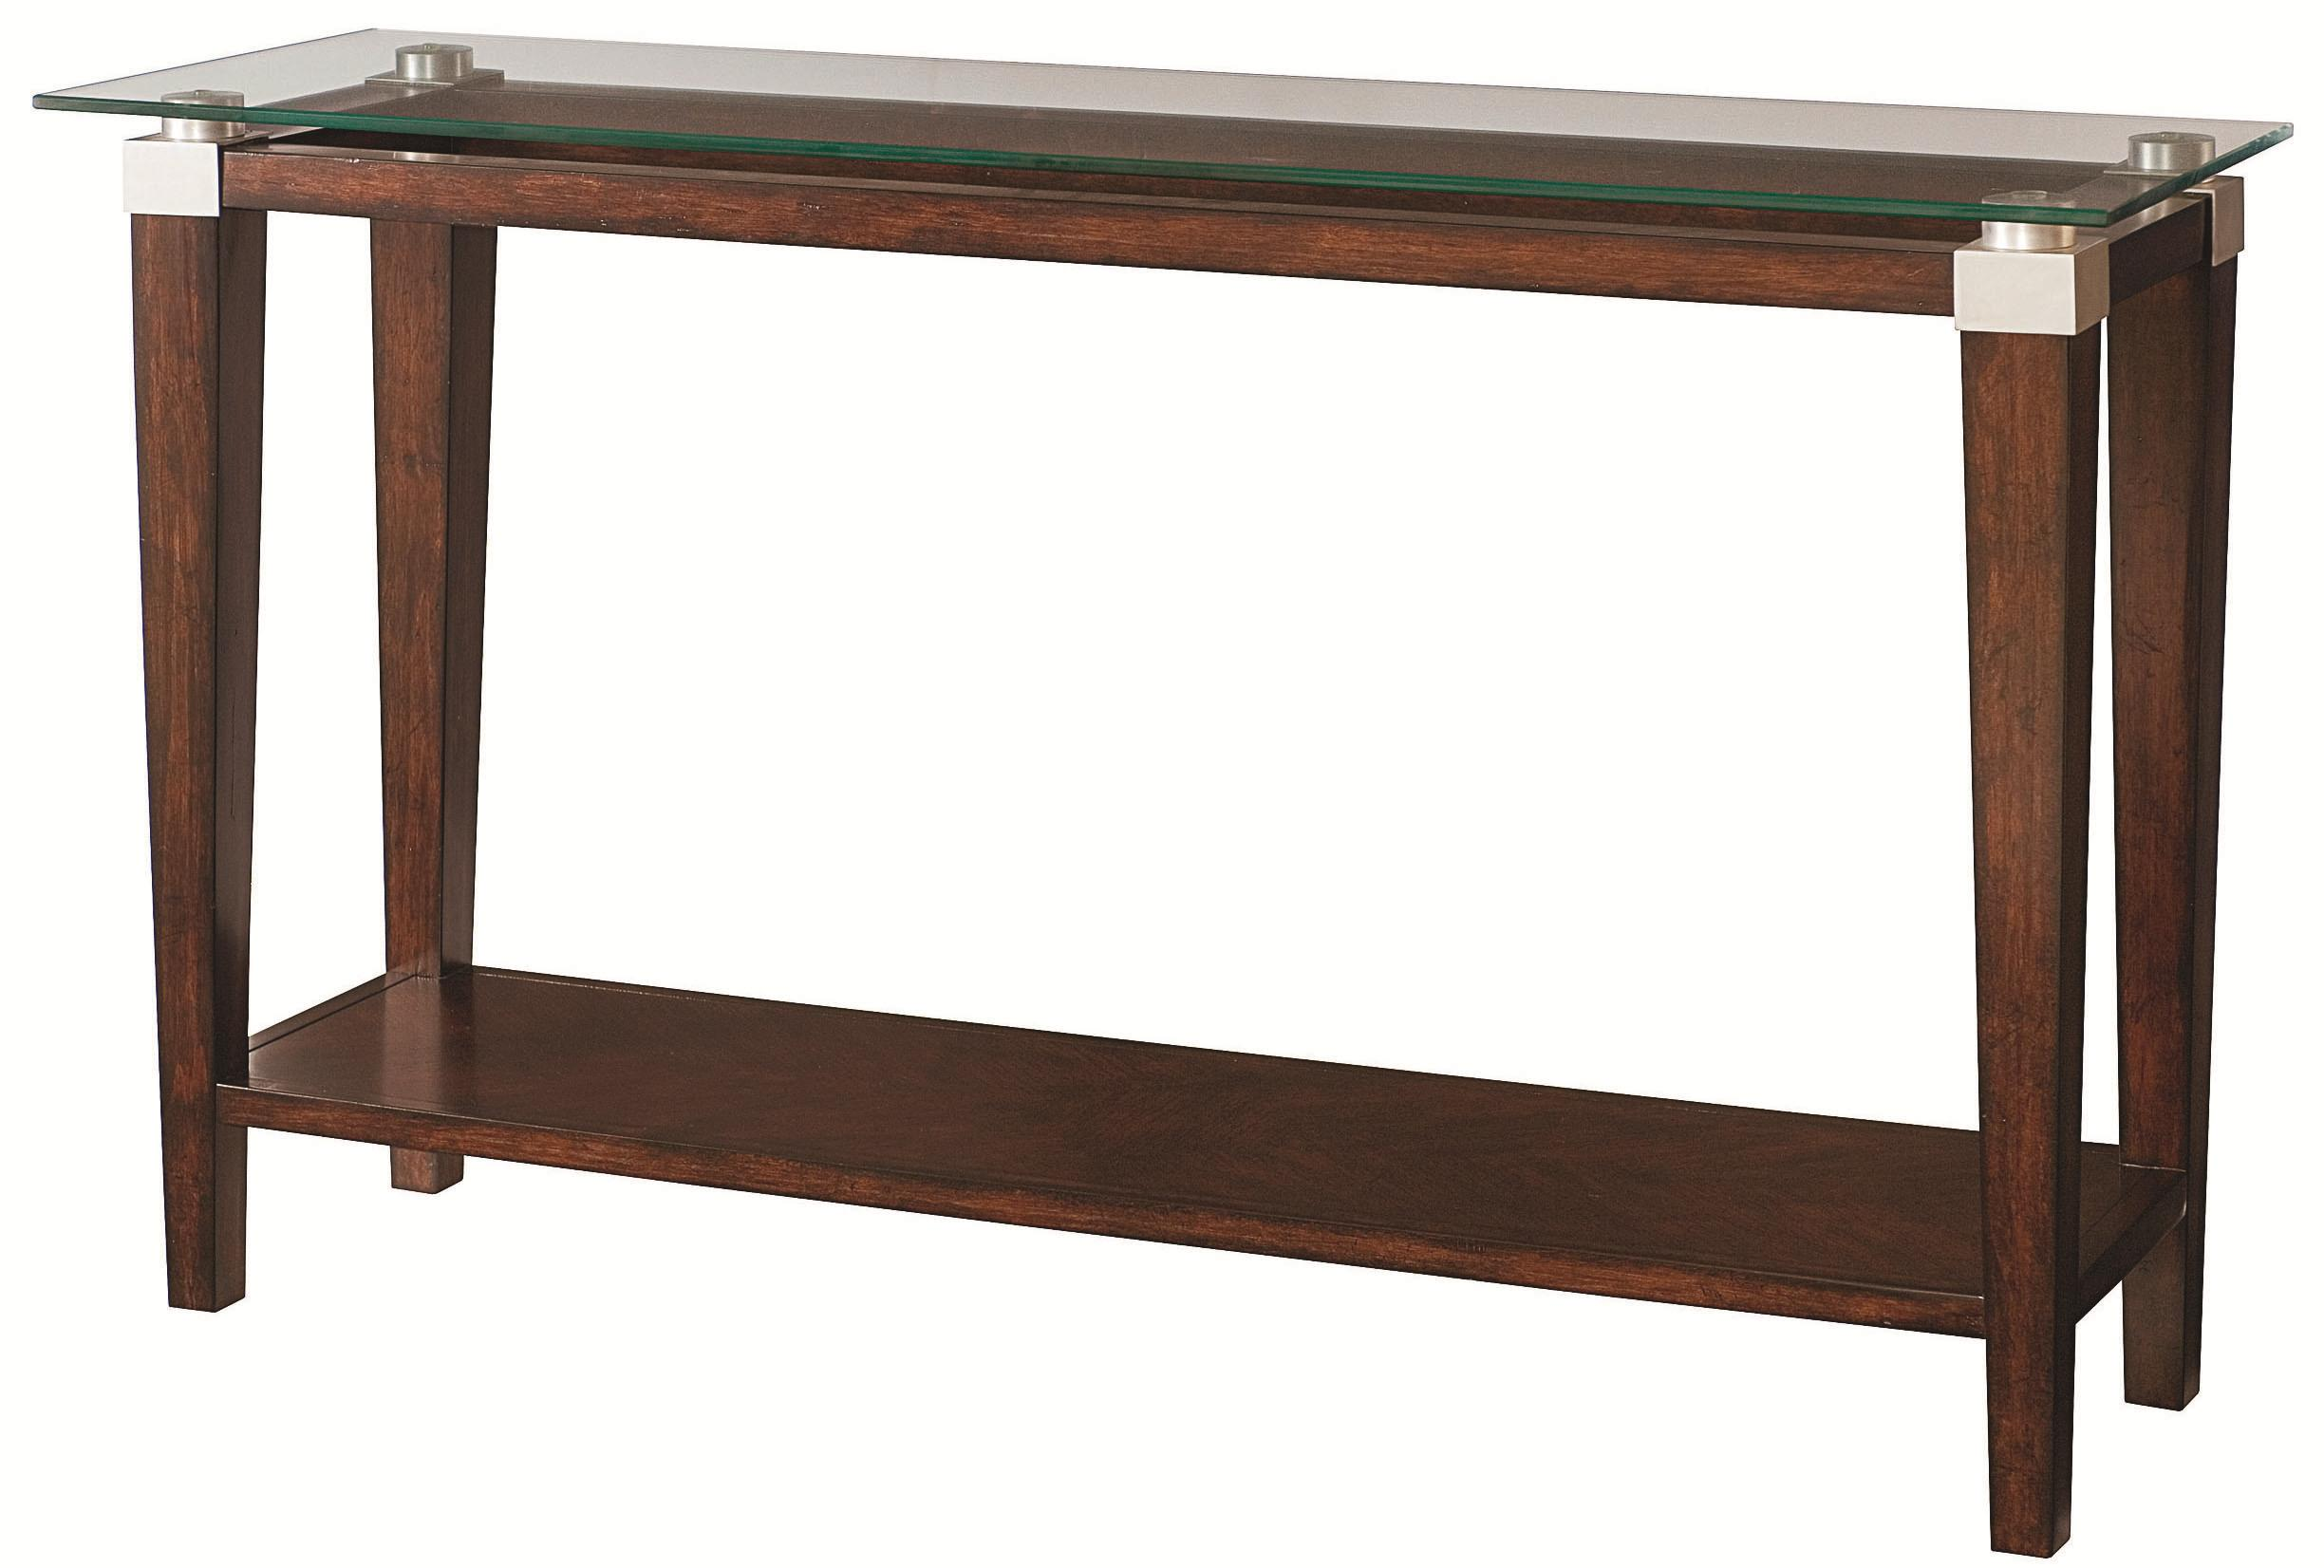 Contemporary sofa table with glass top by hammary wolf for Sofa table 50 inches